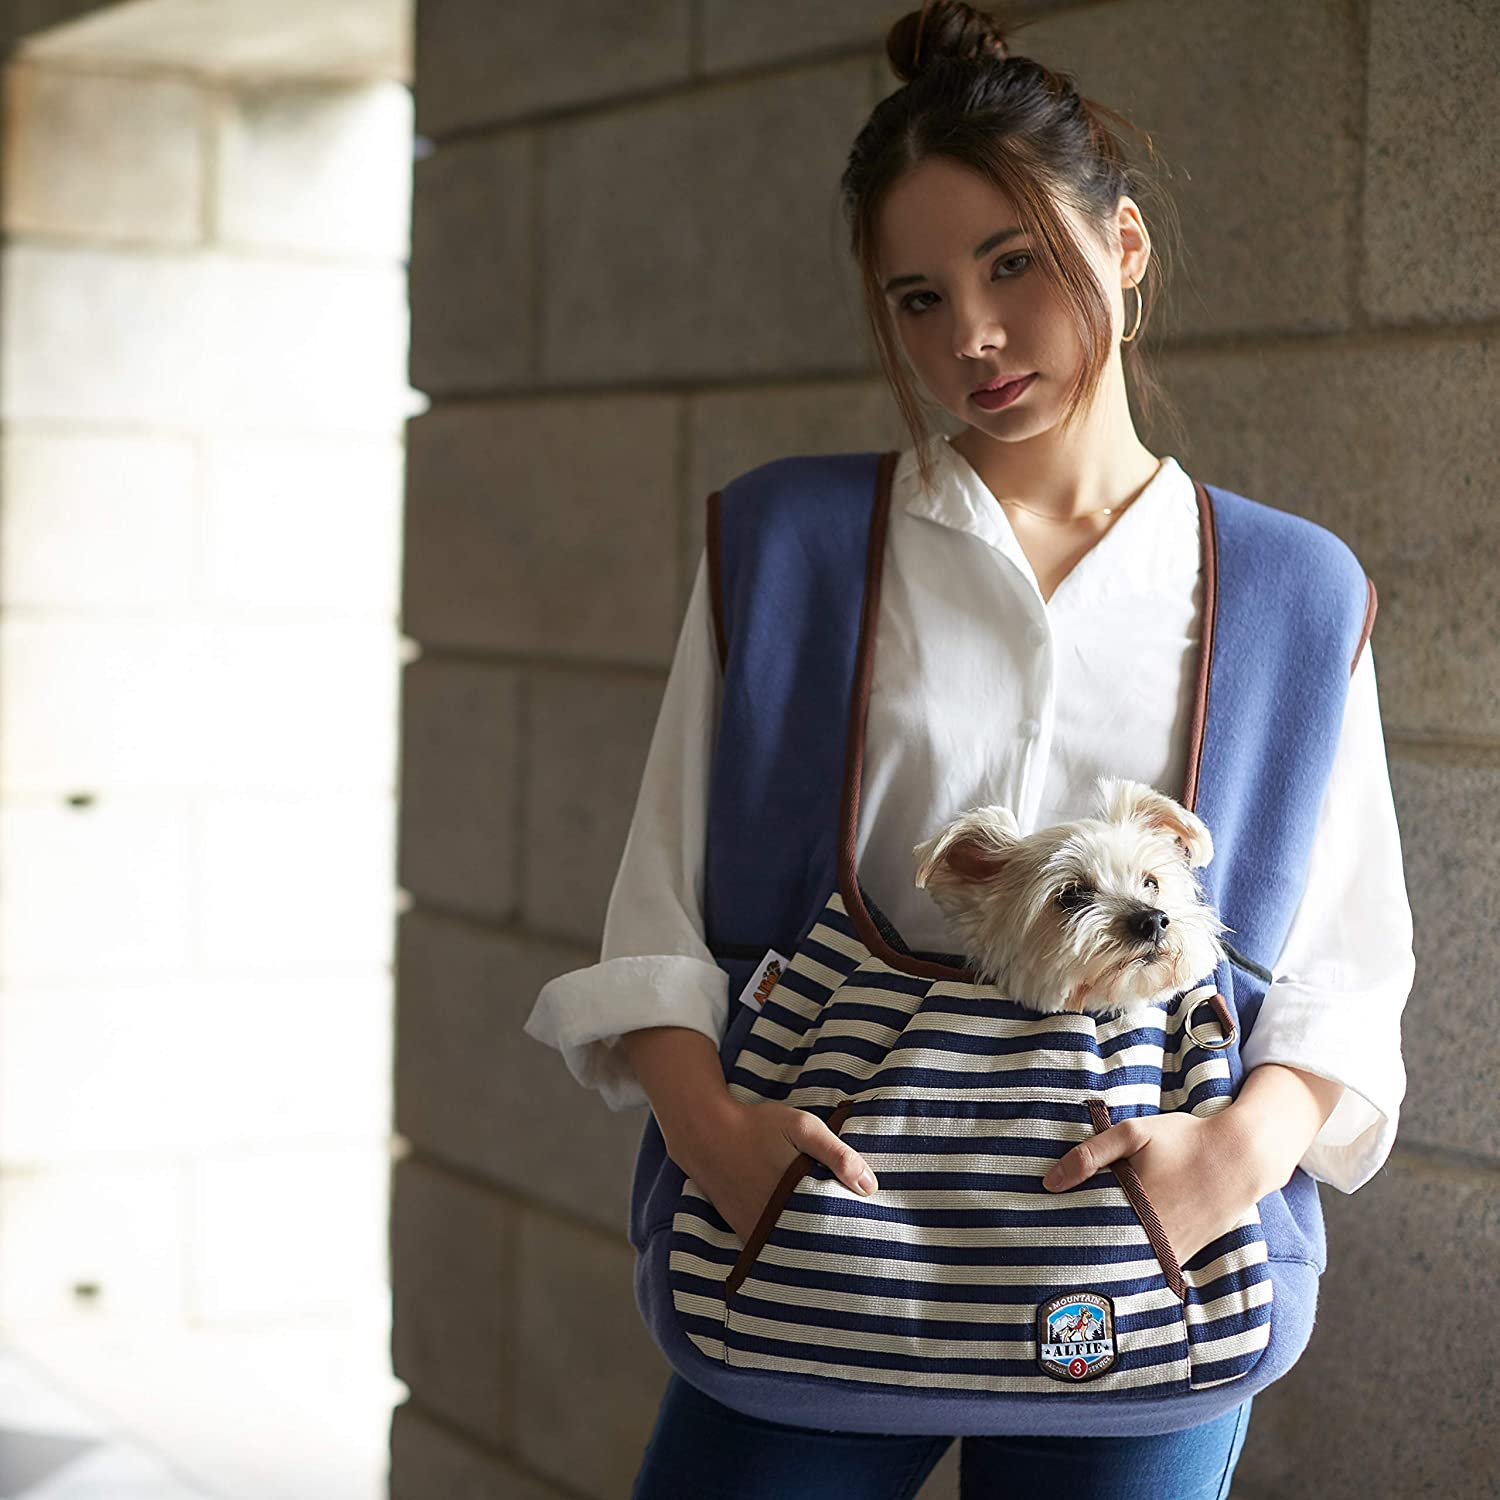 Person holding small white dog in a front-facing striped dog sling.